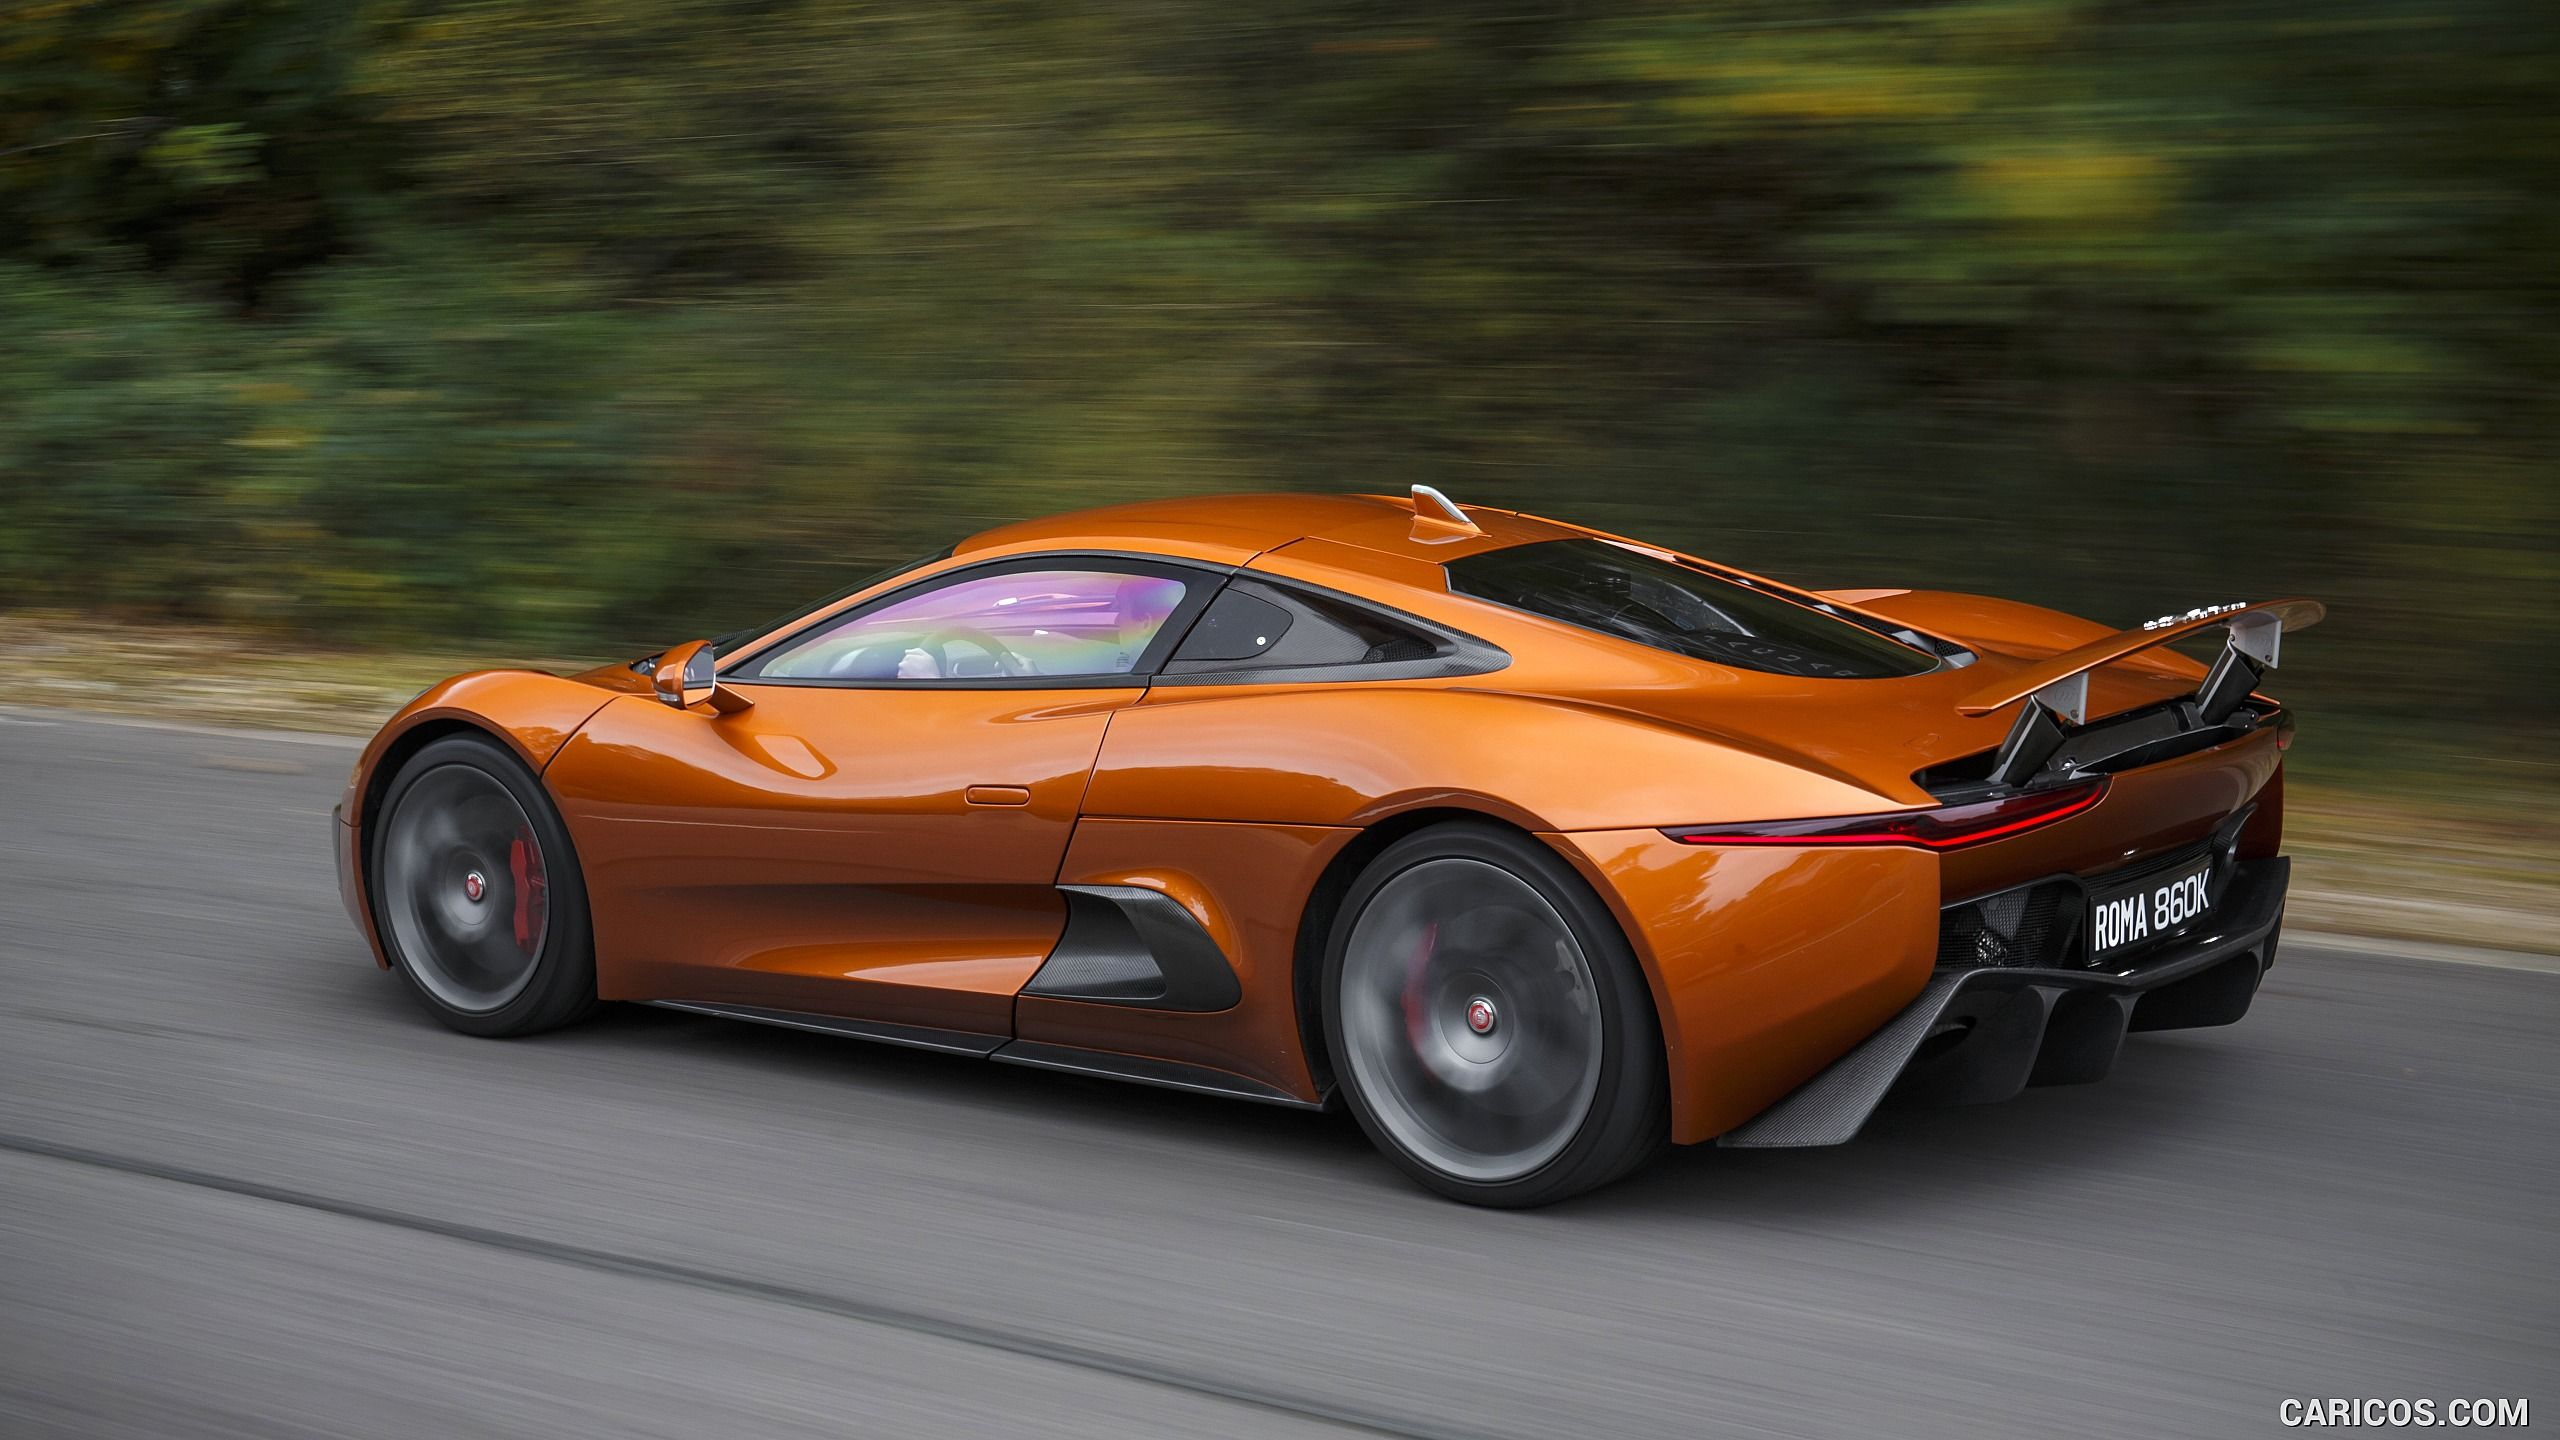 Superior 2019 Jaguar C X75 Review And Price U2013 The Oncoming Vehicle Of Jaguar Will  Probably Be An Exotic Supercar With Excellent Appear And Spectacular Showsu2026